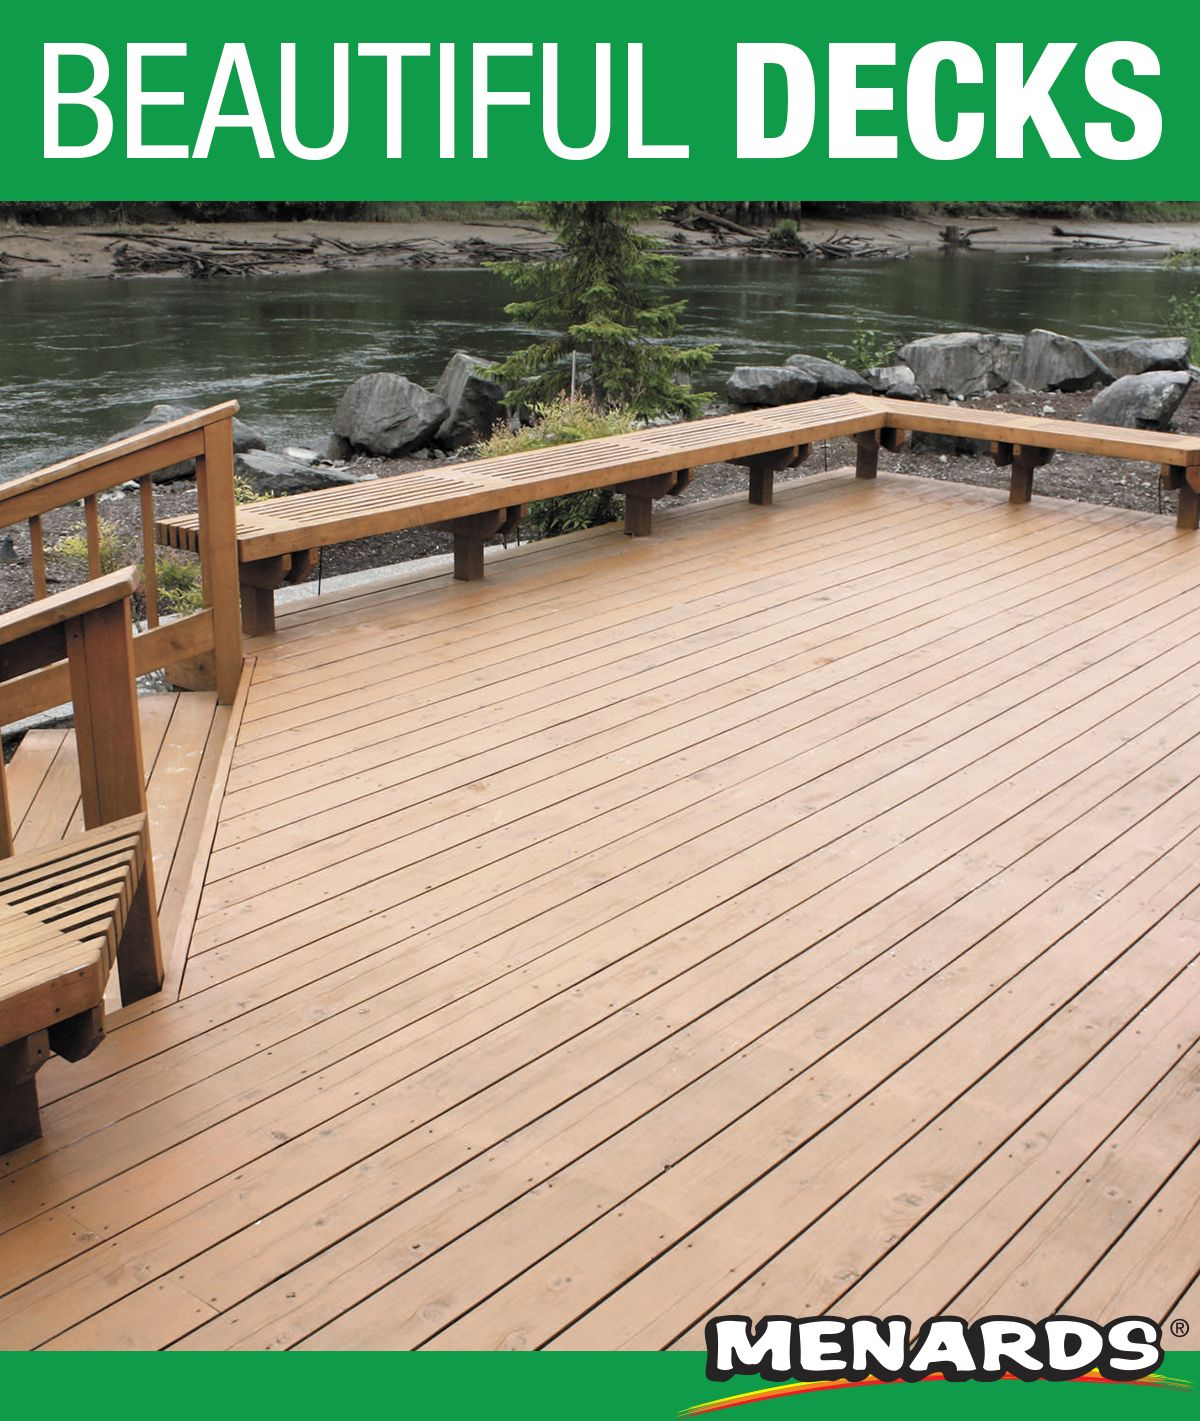 Complete Your Next Deck Project With Ac2 Cedartone Premium Thick Deck Decking Available Exclusively At Menards Deck Deck Projects Pressure Treated Deck Boards